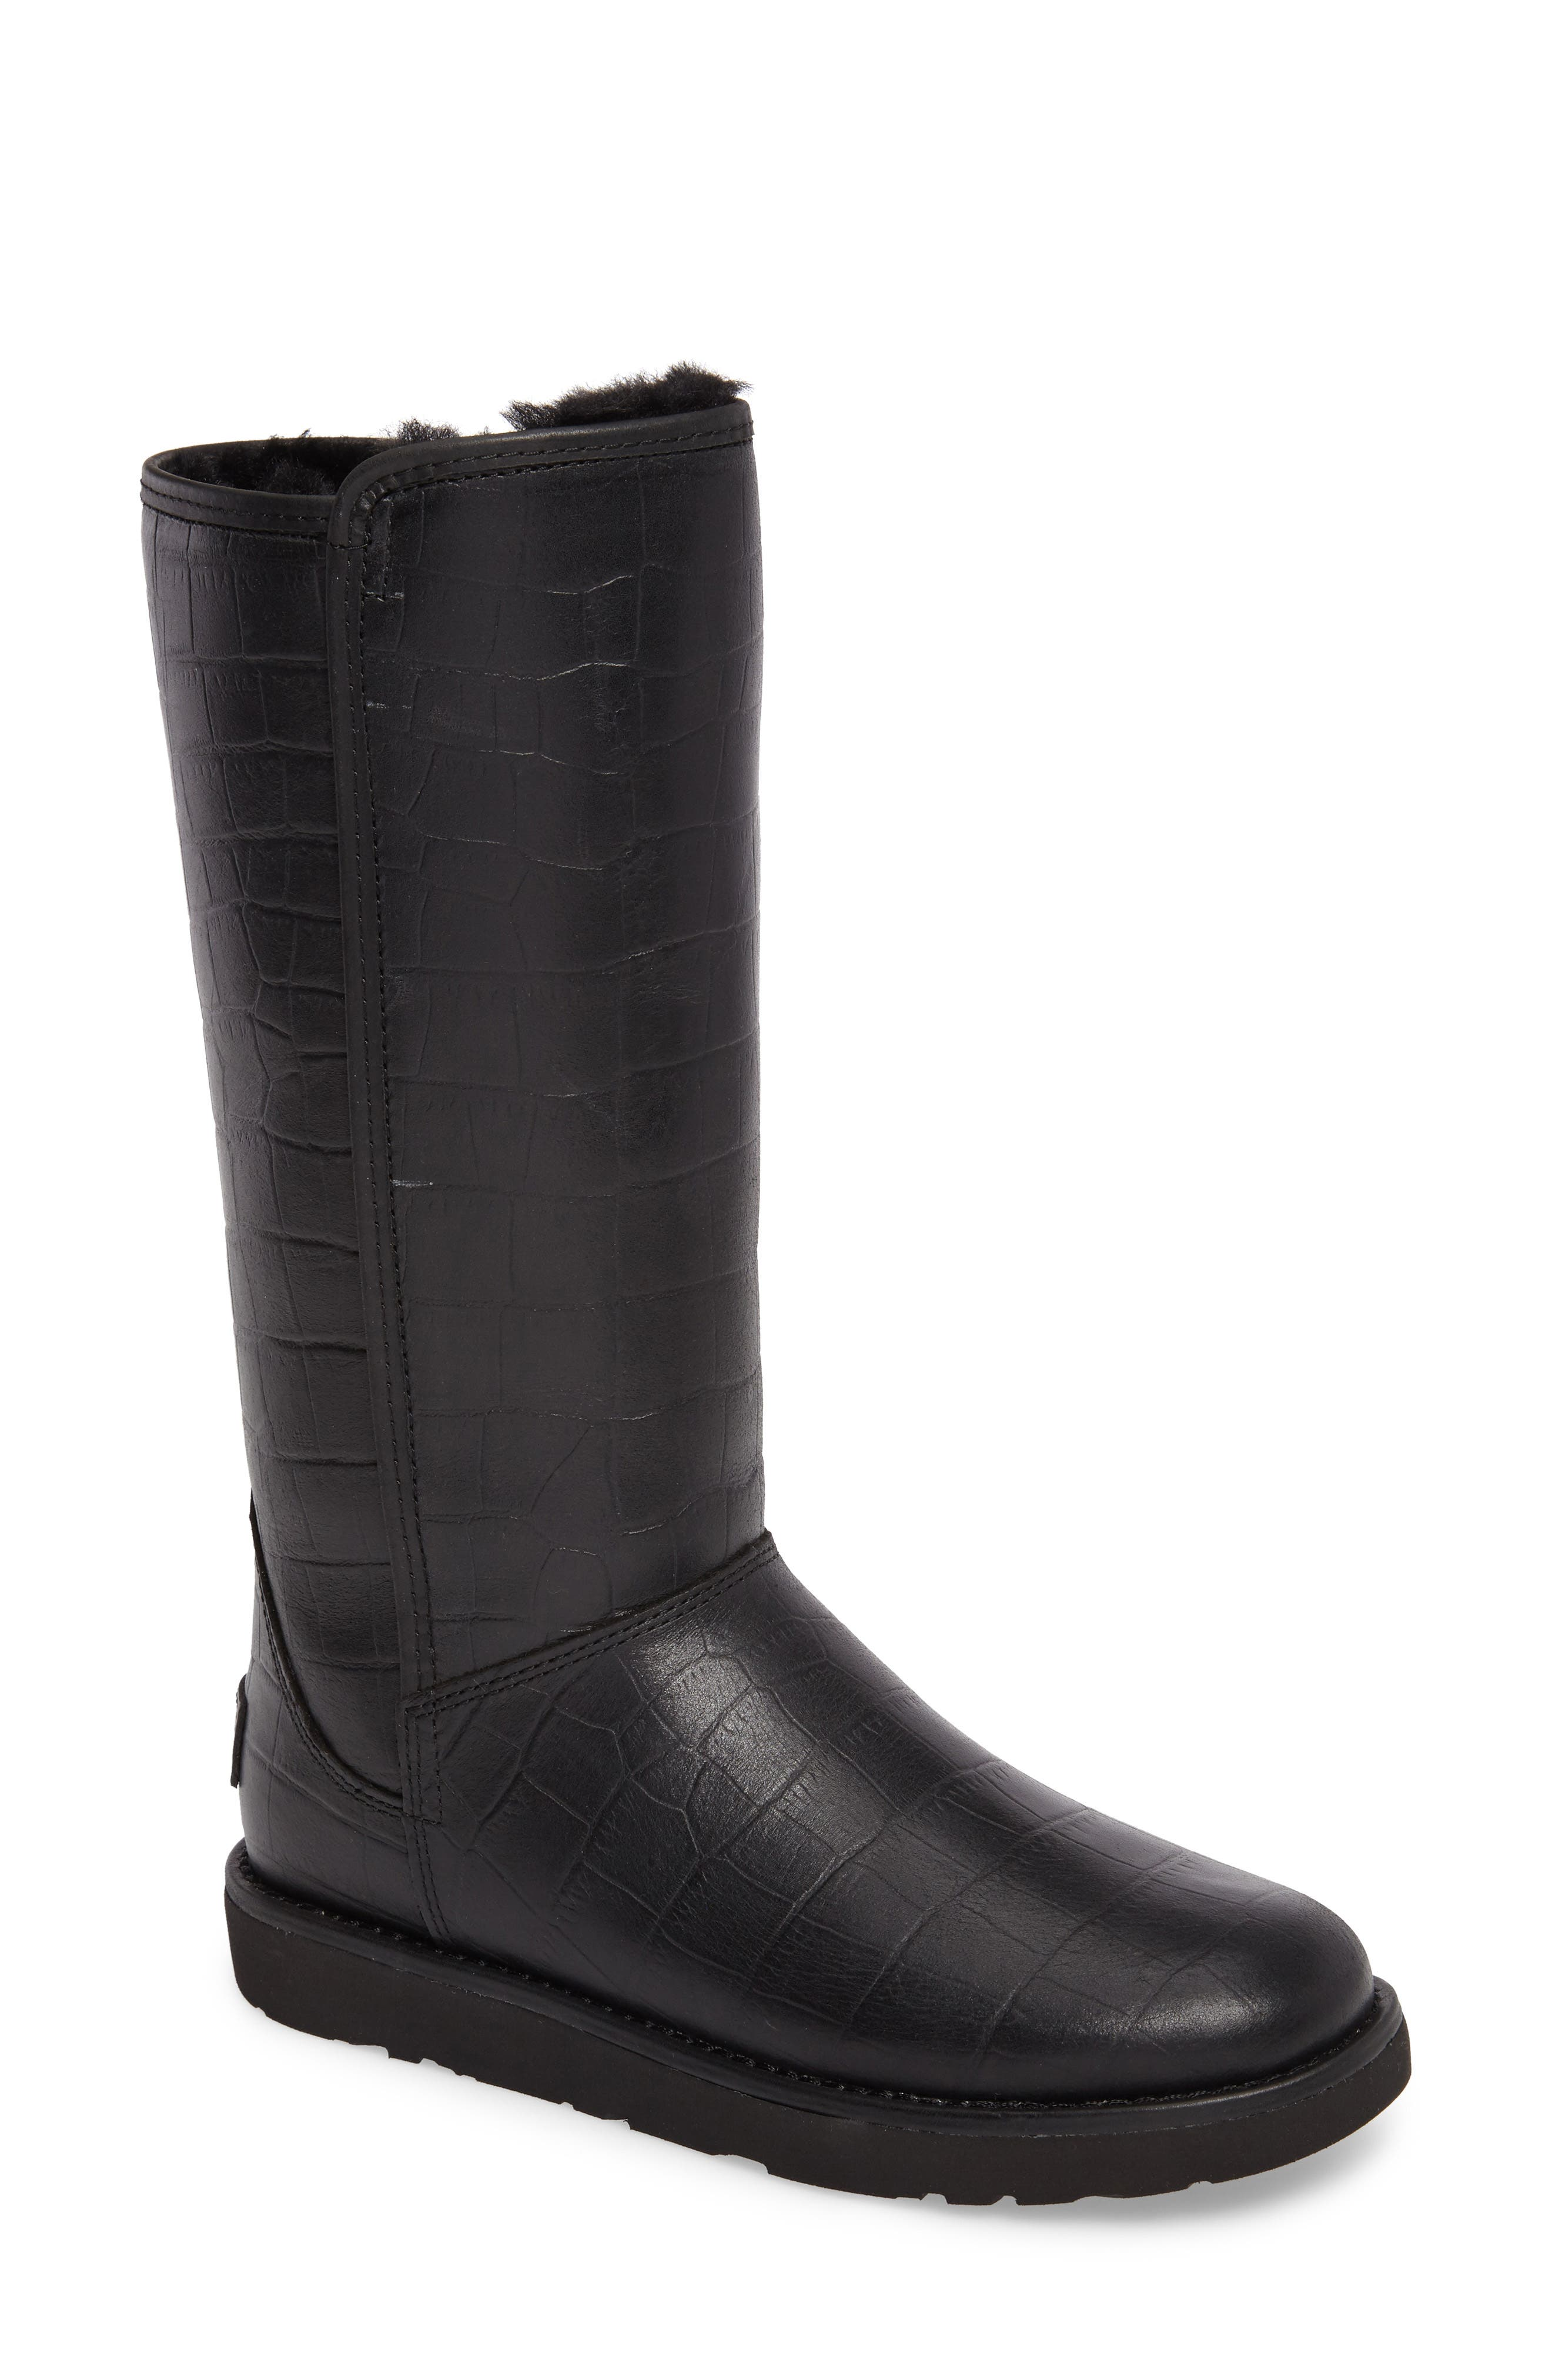 Alternate Image 1 Selected - UGG® Abree II Croc Embossed Boot (Women)